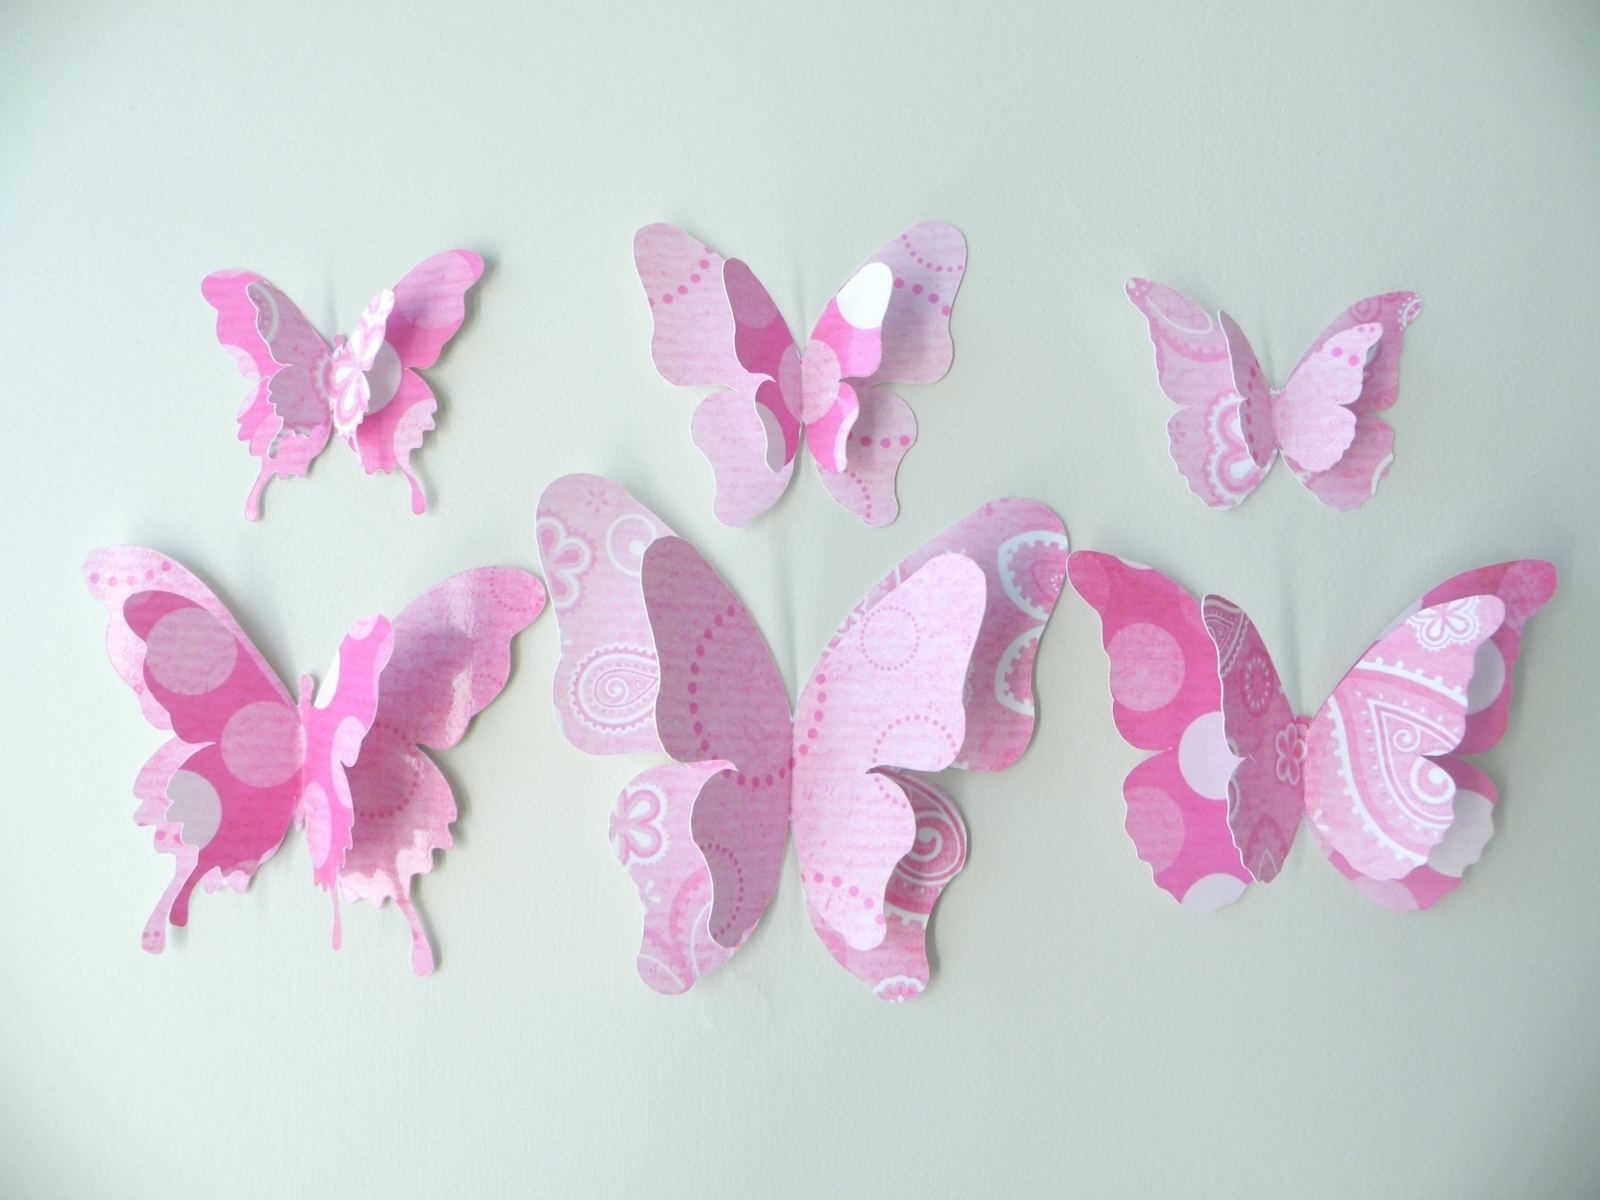 Most Recently Released Sunshiny D Butterfly Wall With Image Butterfly Wall Decor Intended For Pink Butterfly Wall Art (View 12 of 15)